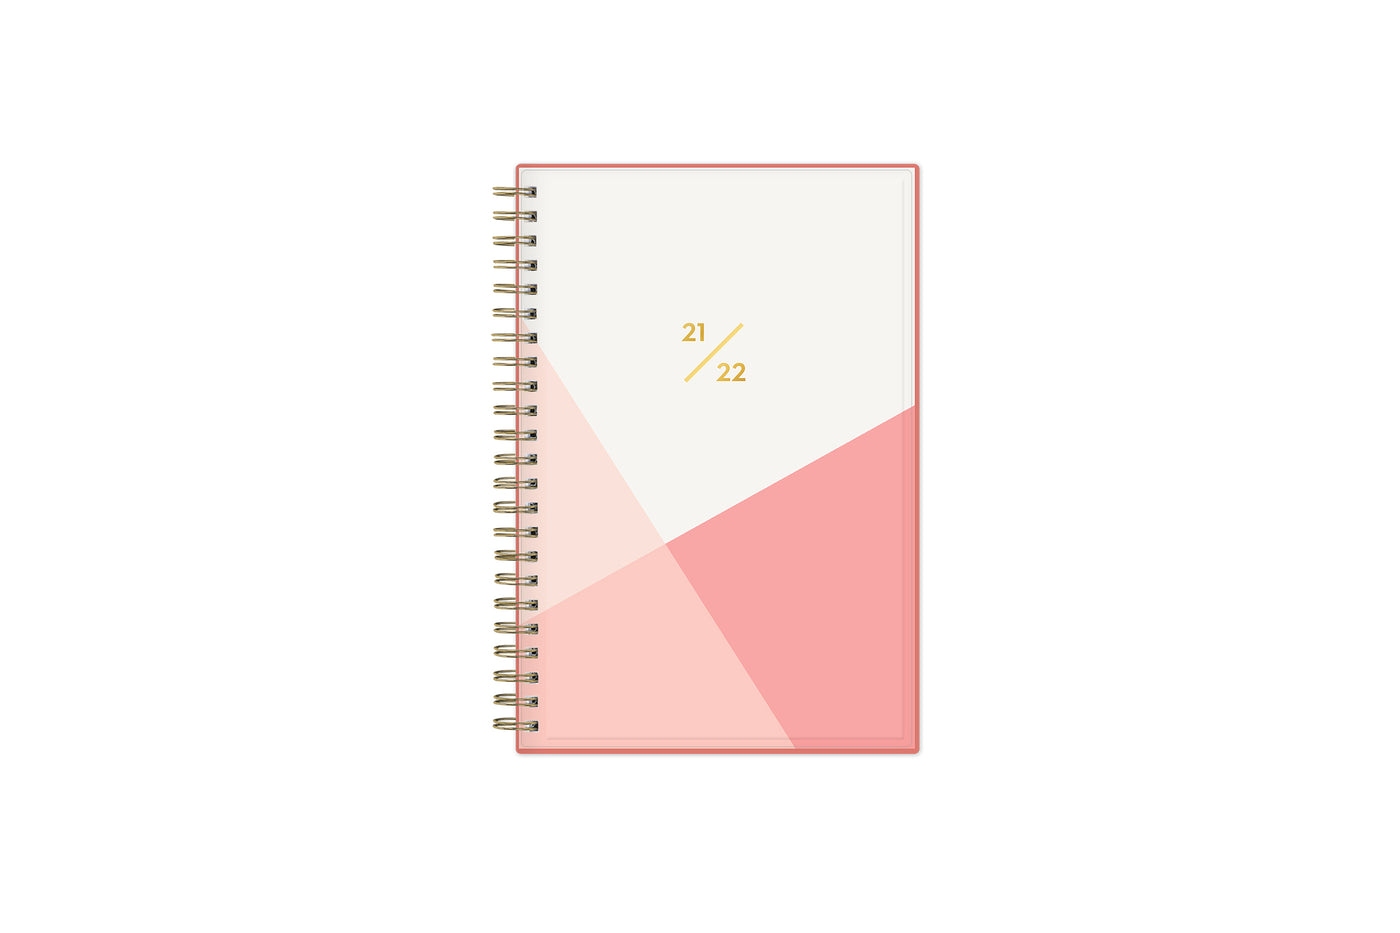 June 2021-2022 weekly and monthly planner for academic year featuring a geometric design in palette of pinks and white in 5x8 planner size